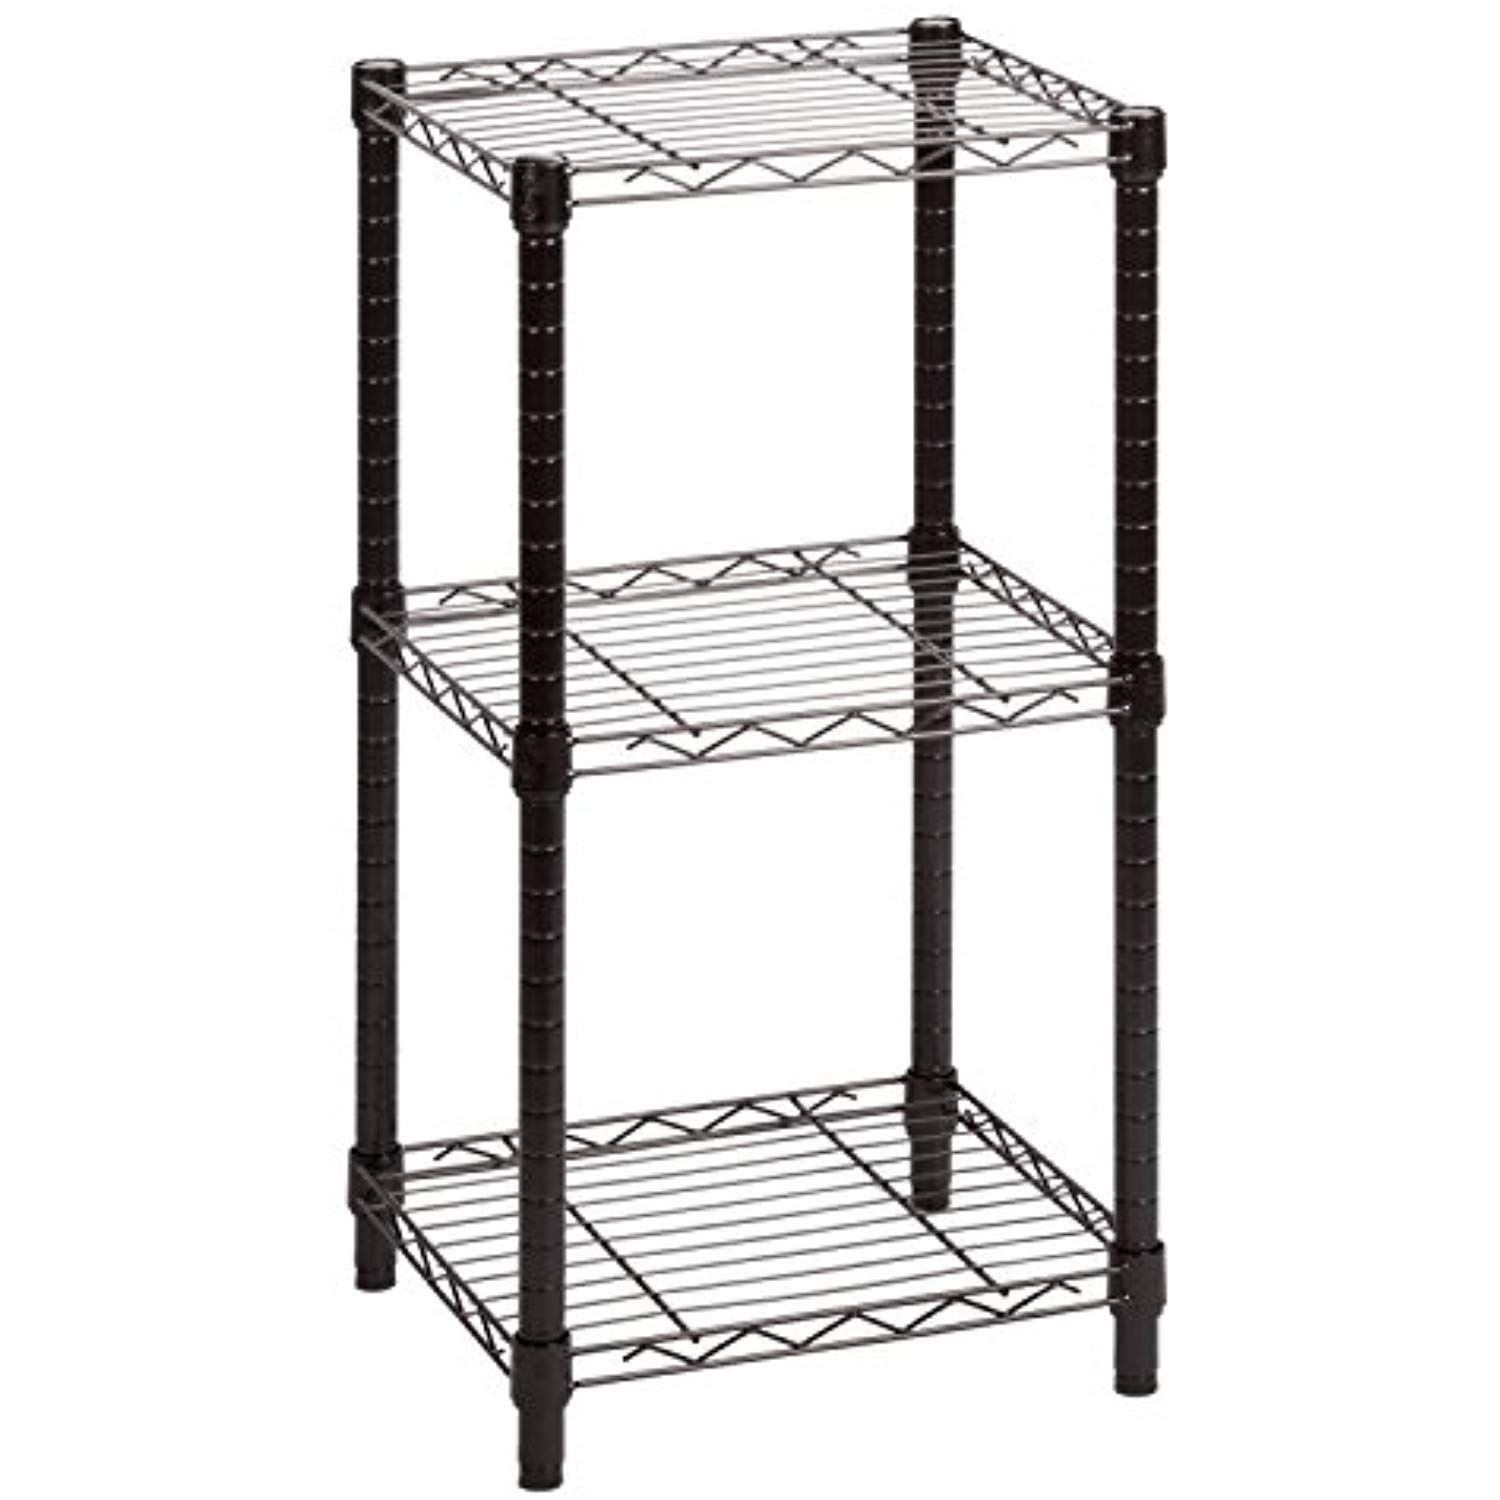 Honey Can Do Shf 02218 3 Tier Steel Wire Shelving Tower Black 14 By 15 By 30 Inch Want To Know More Click On The Im Wire Shelving Shelving Shelving Unit